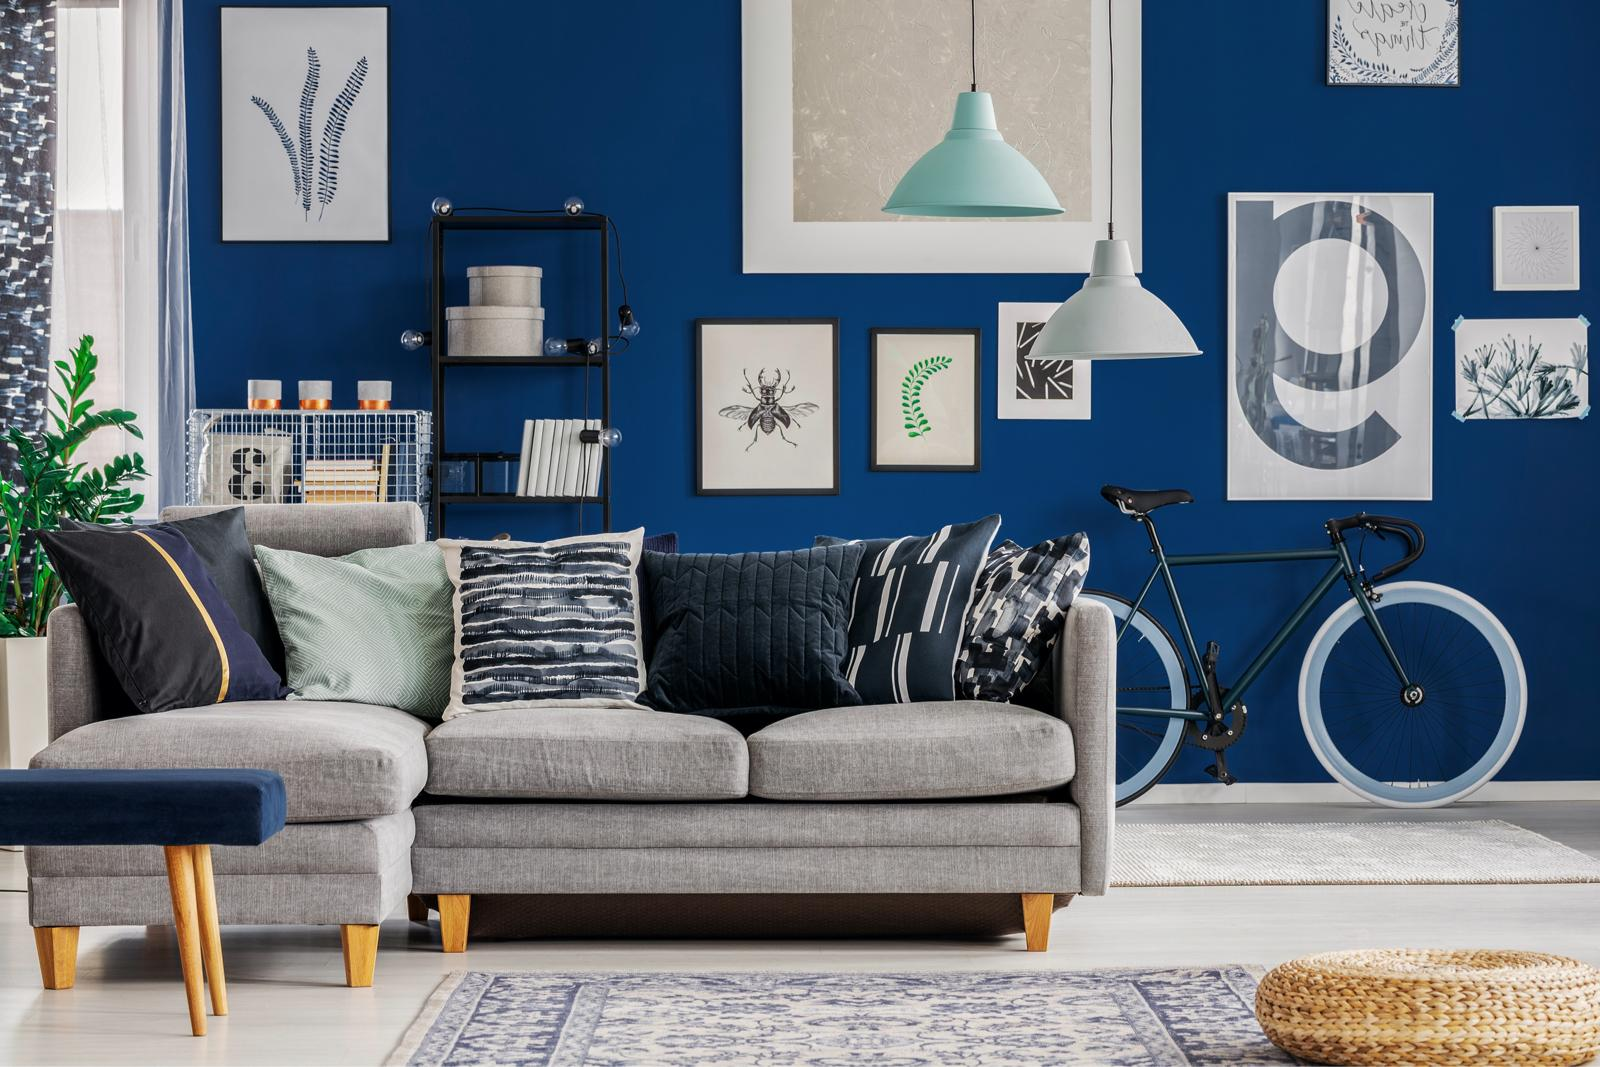 Maximalism Style And Why We Love It 2, Paneling Factory Of Virginia